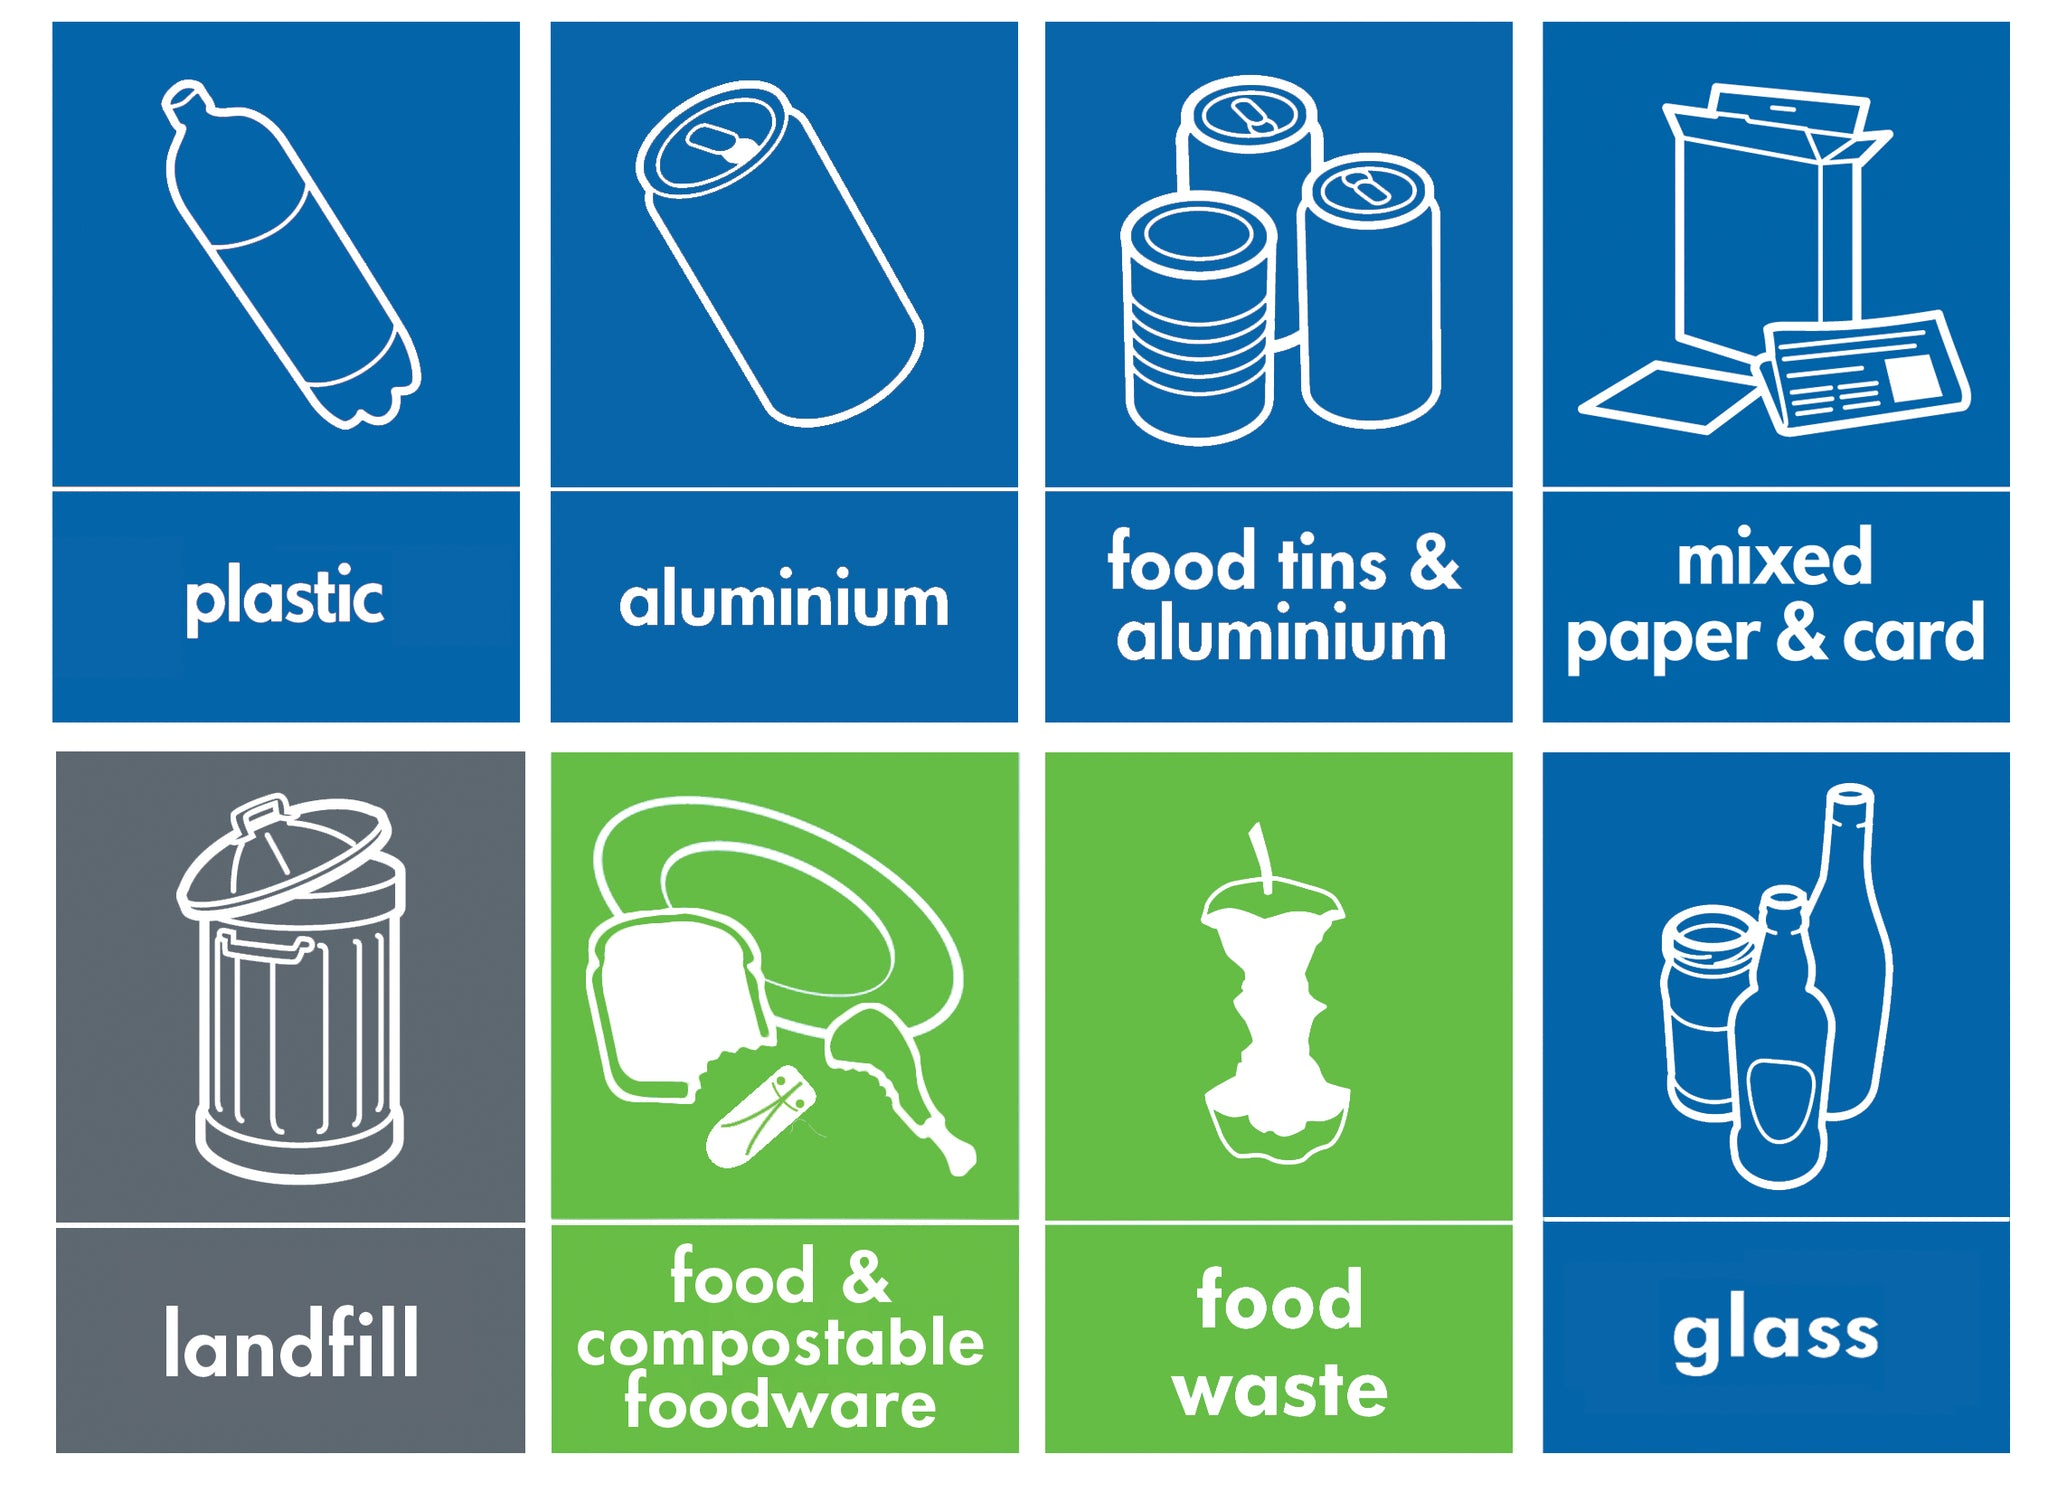 Recycle Bin Resources for your Deli or Business